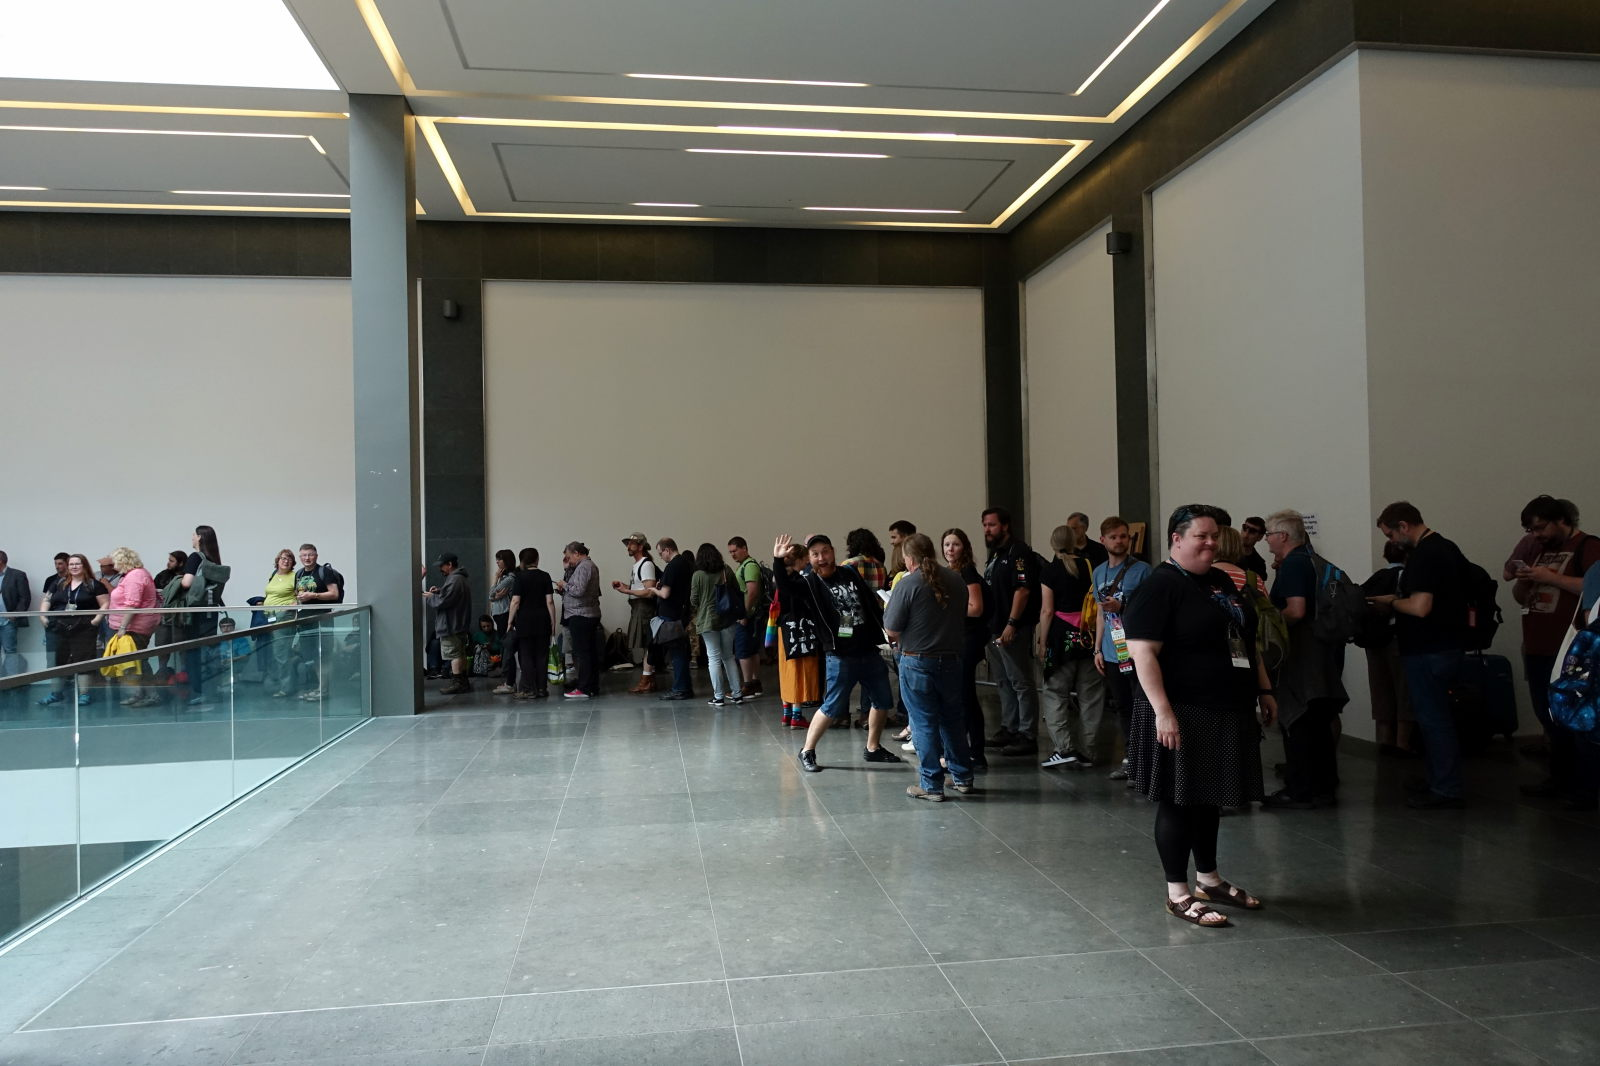 Many people standing in a queue in odeon Cinema during Dublin 2019.